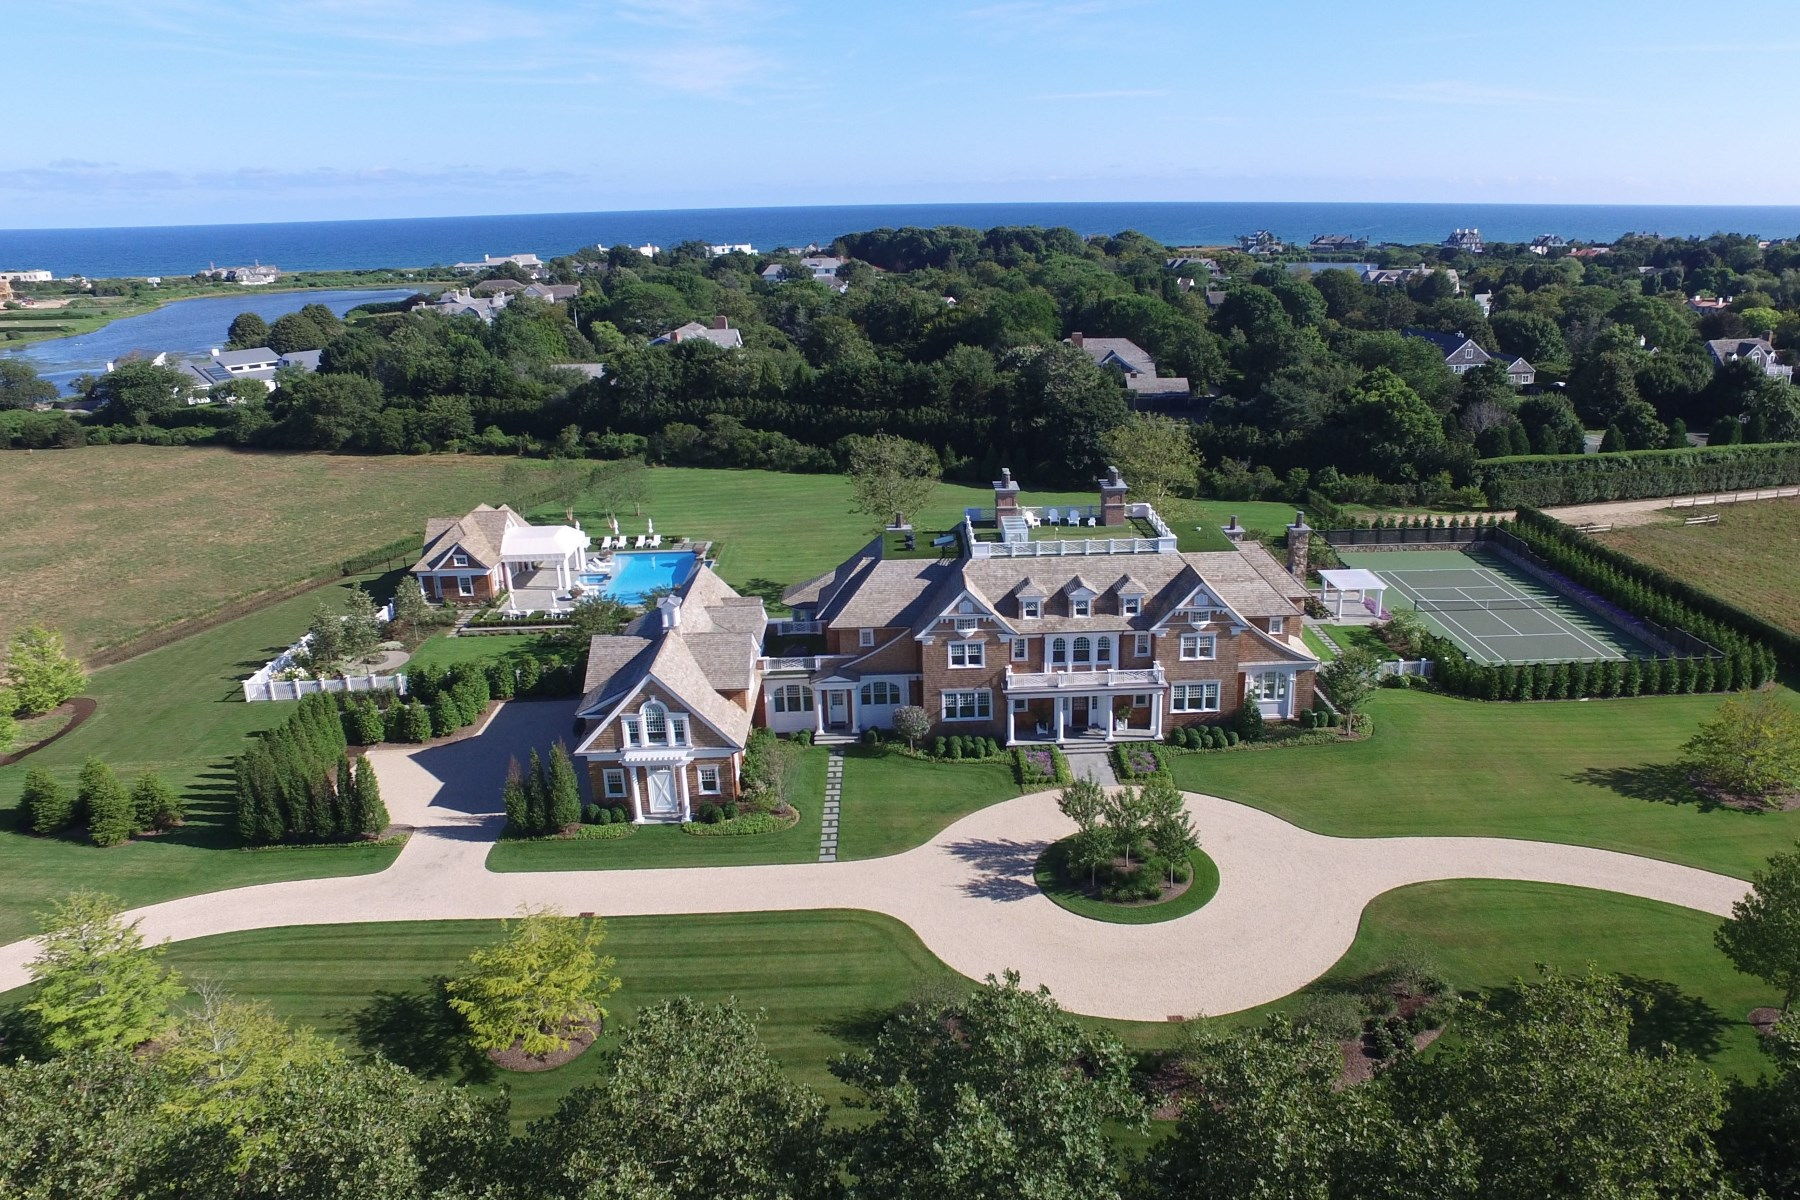 Single Family Home for Sale at Twin Peaks Luxury Estate 9 Olde Towne Lane Southampton, New York, 11968 United States